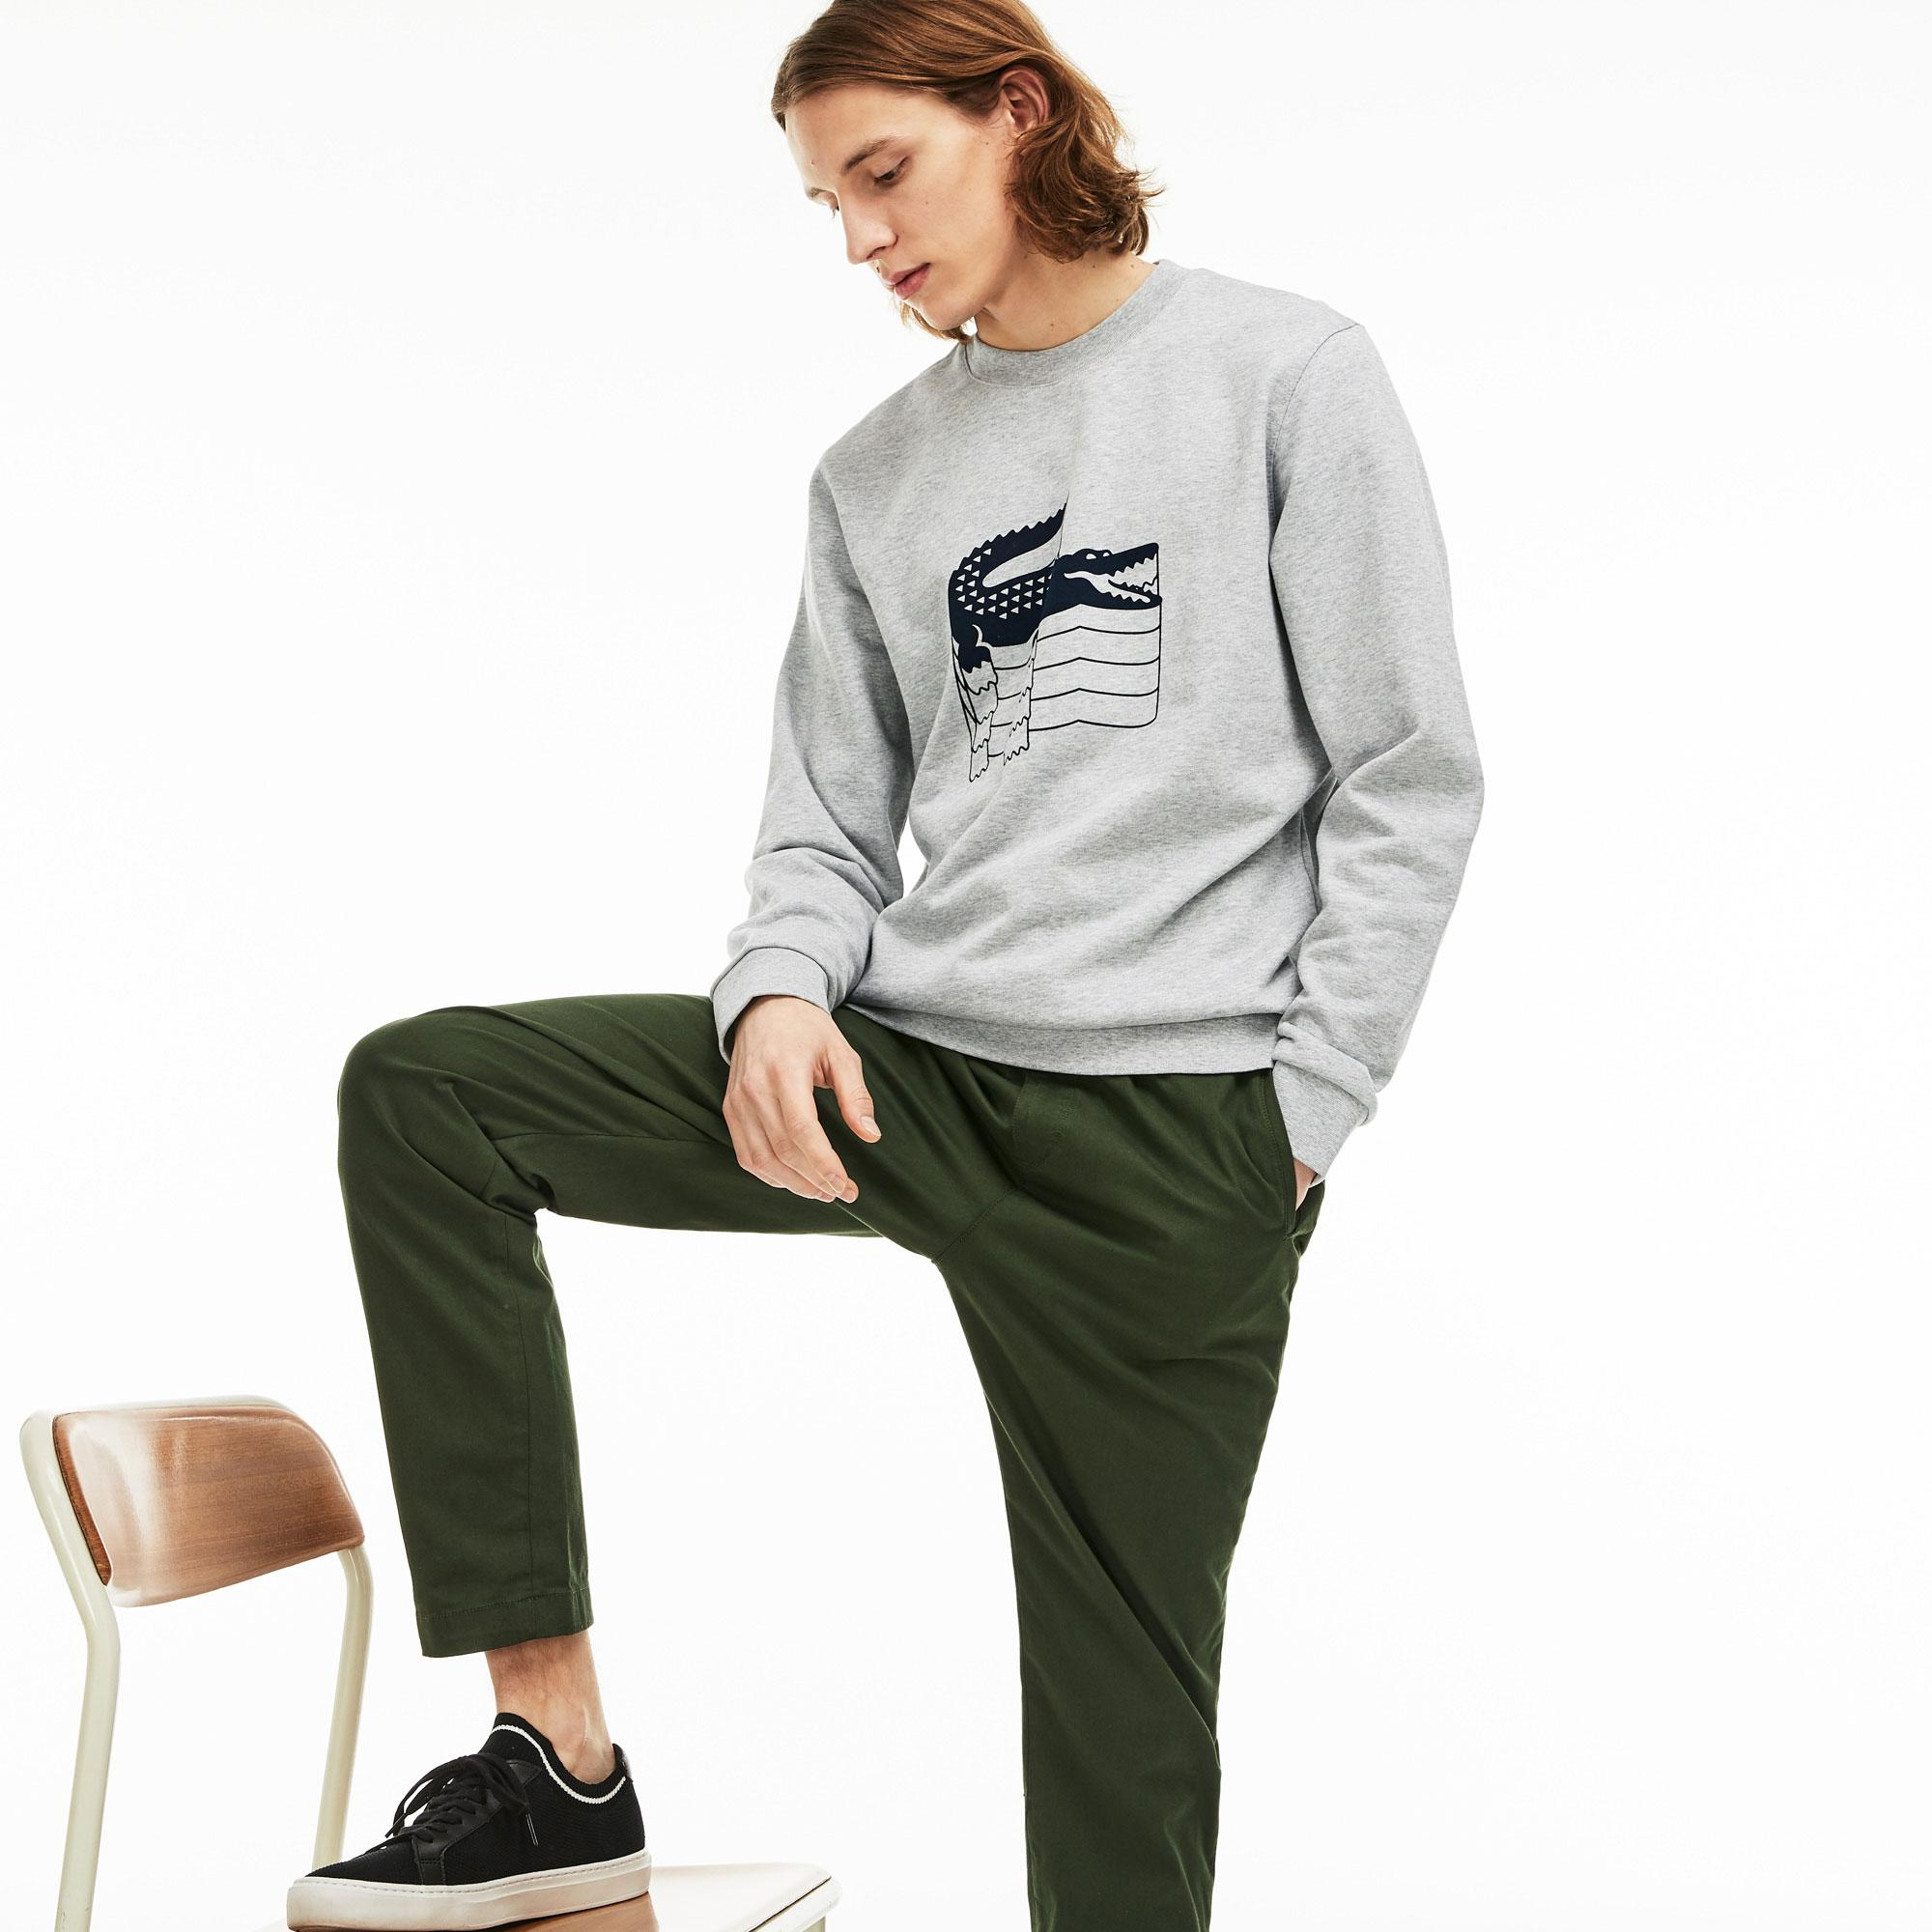 Lacoste Men's Crew Neck Crocodile Print Fleece SweatShirt